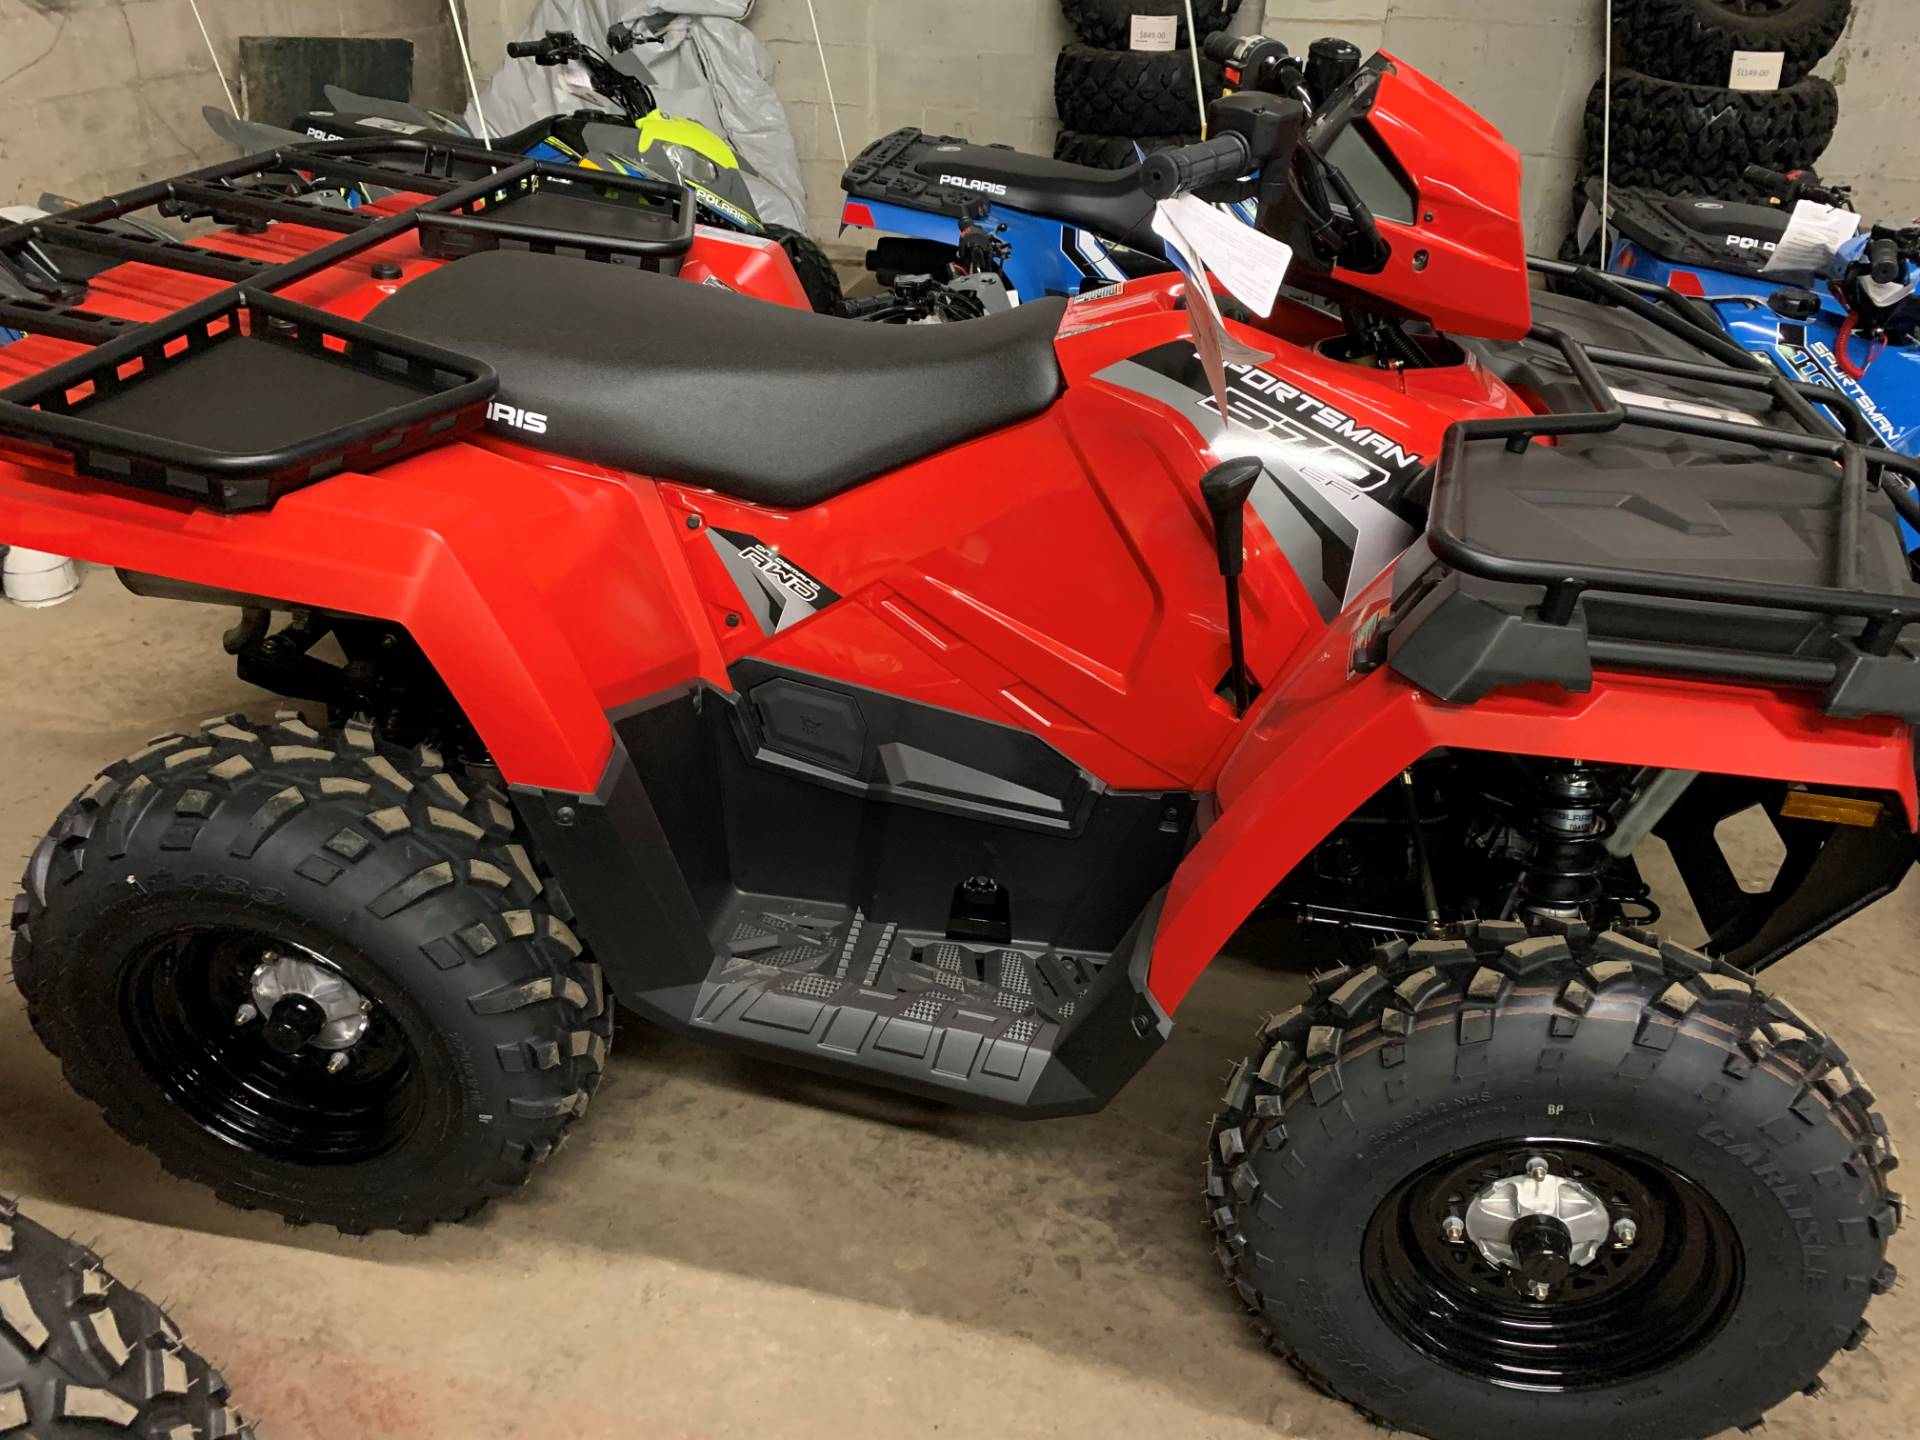 2020 Polaris Sportsman 570 Utility Package in Coraopolis, Pennsylvania - Photo 1